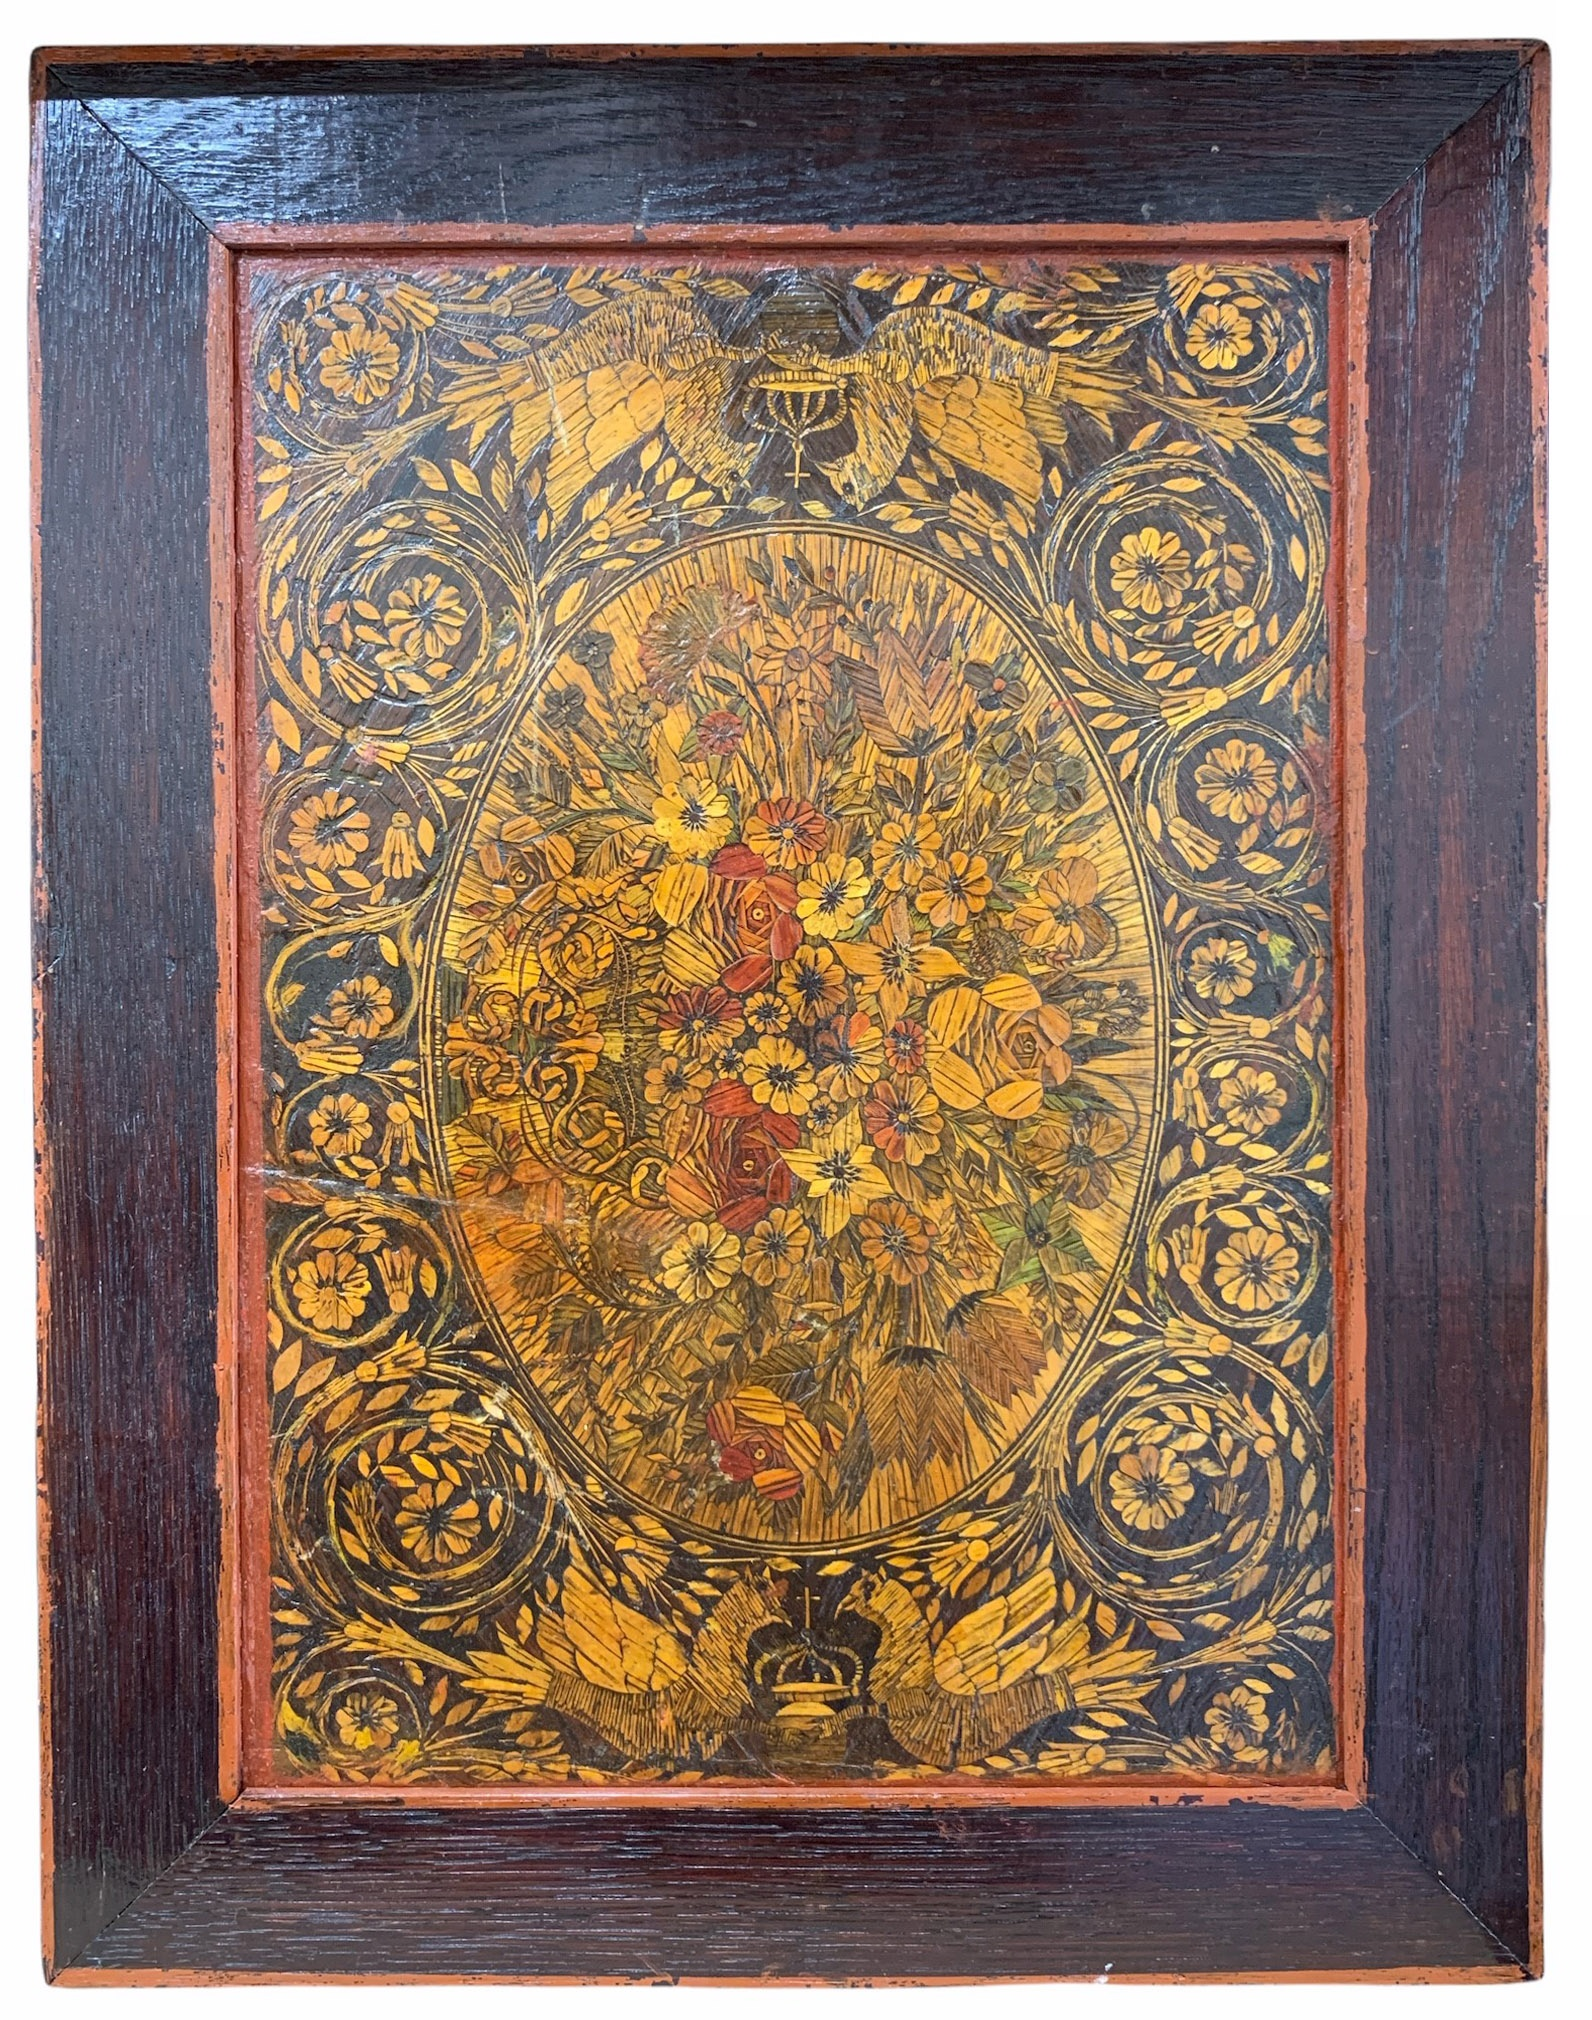 A 19TH CENTURY STRAW WORK PANEL Decorated with birds, flowers and foliage. (35cm x 45cm)